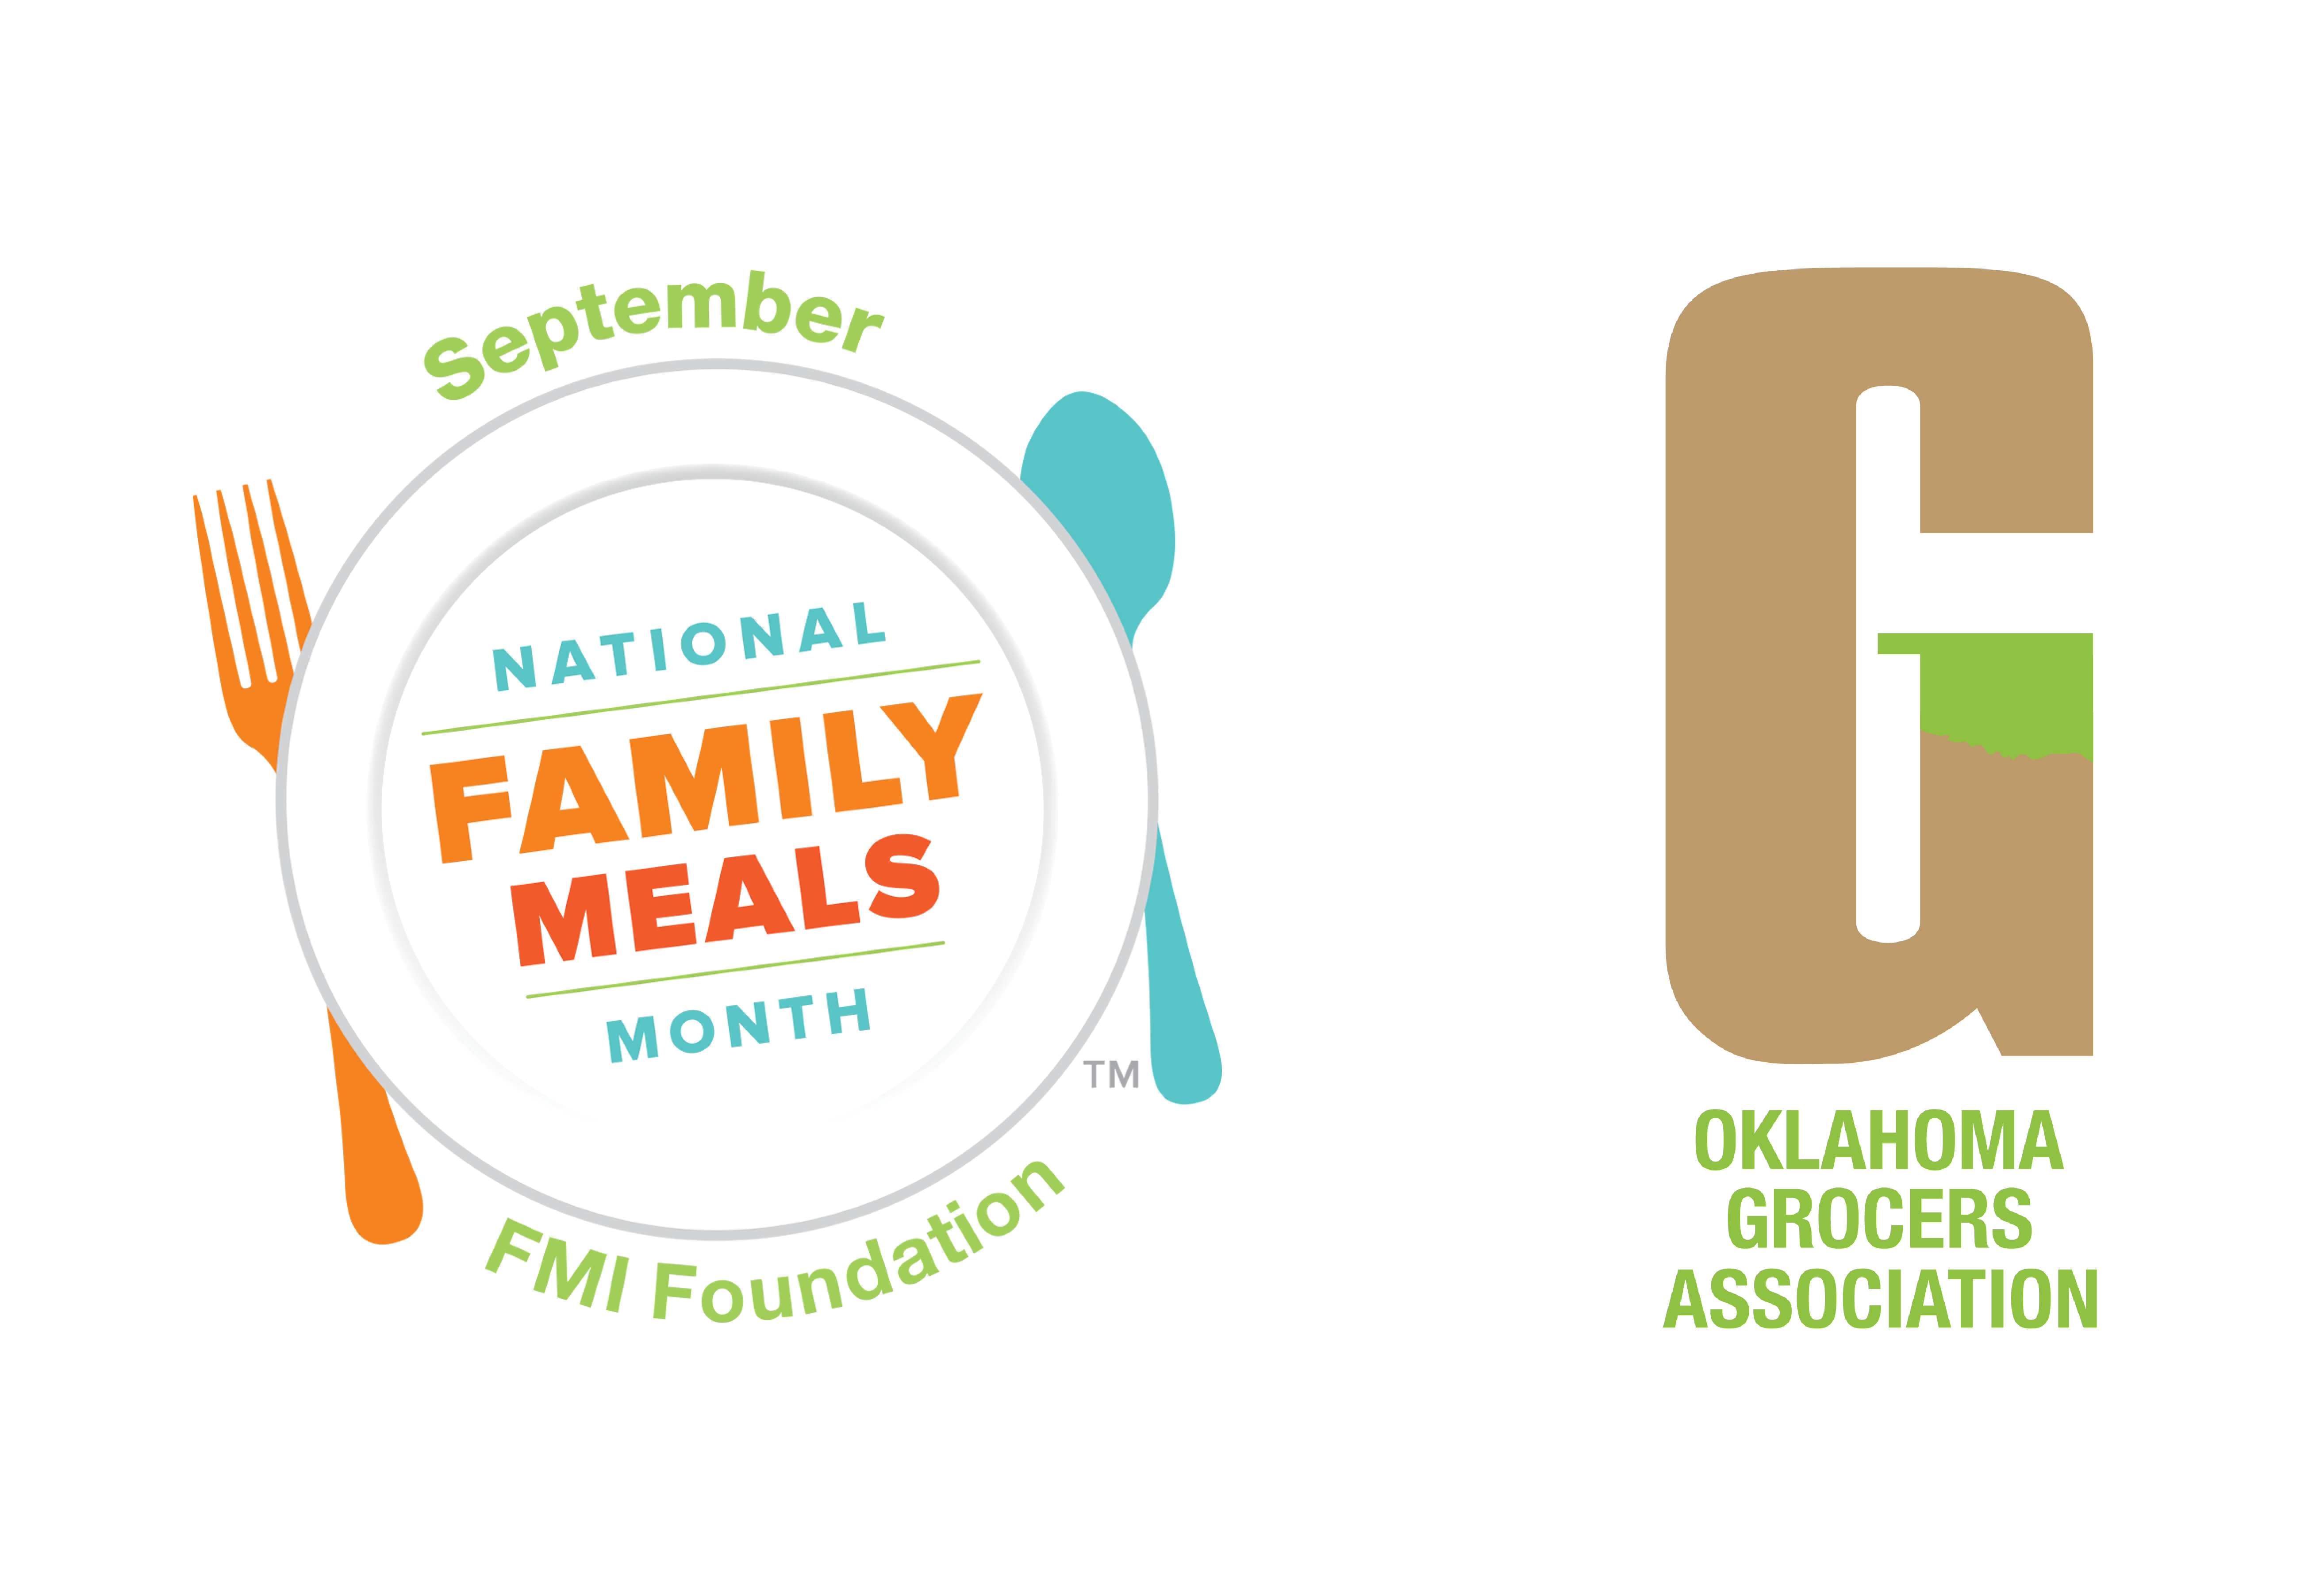 OGA Celebrates National Family Meals Month in partnership with the FMI Foundation